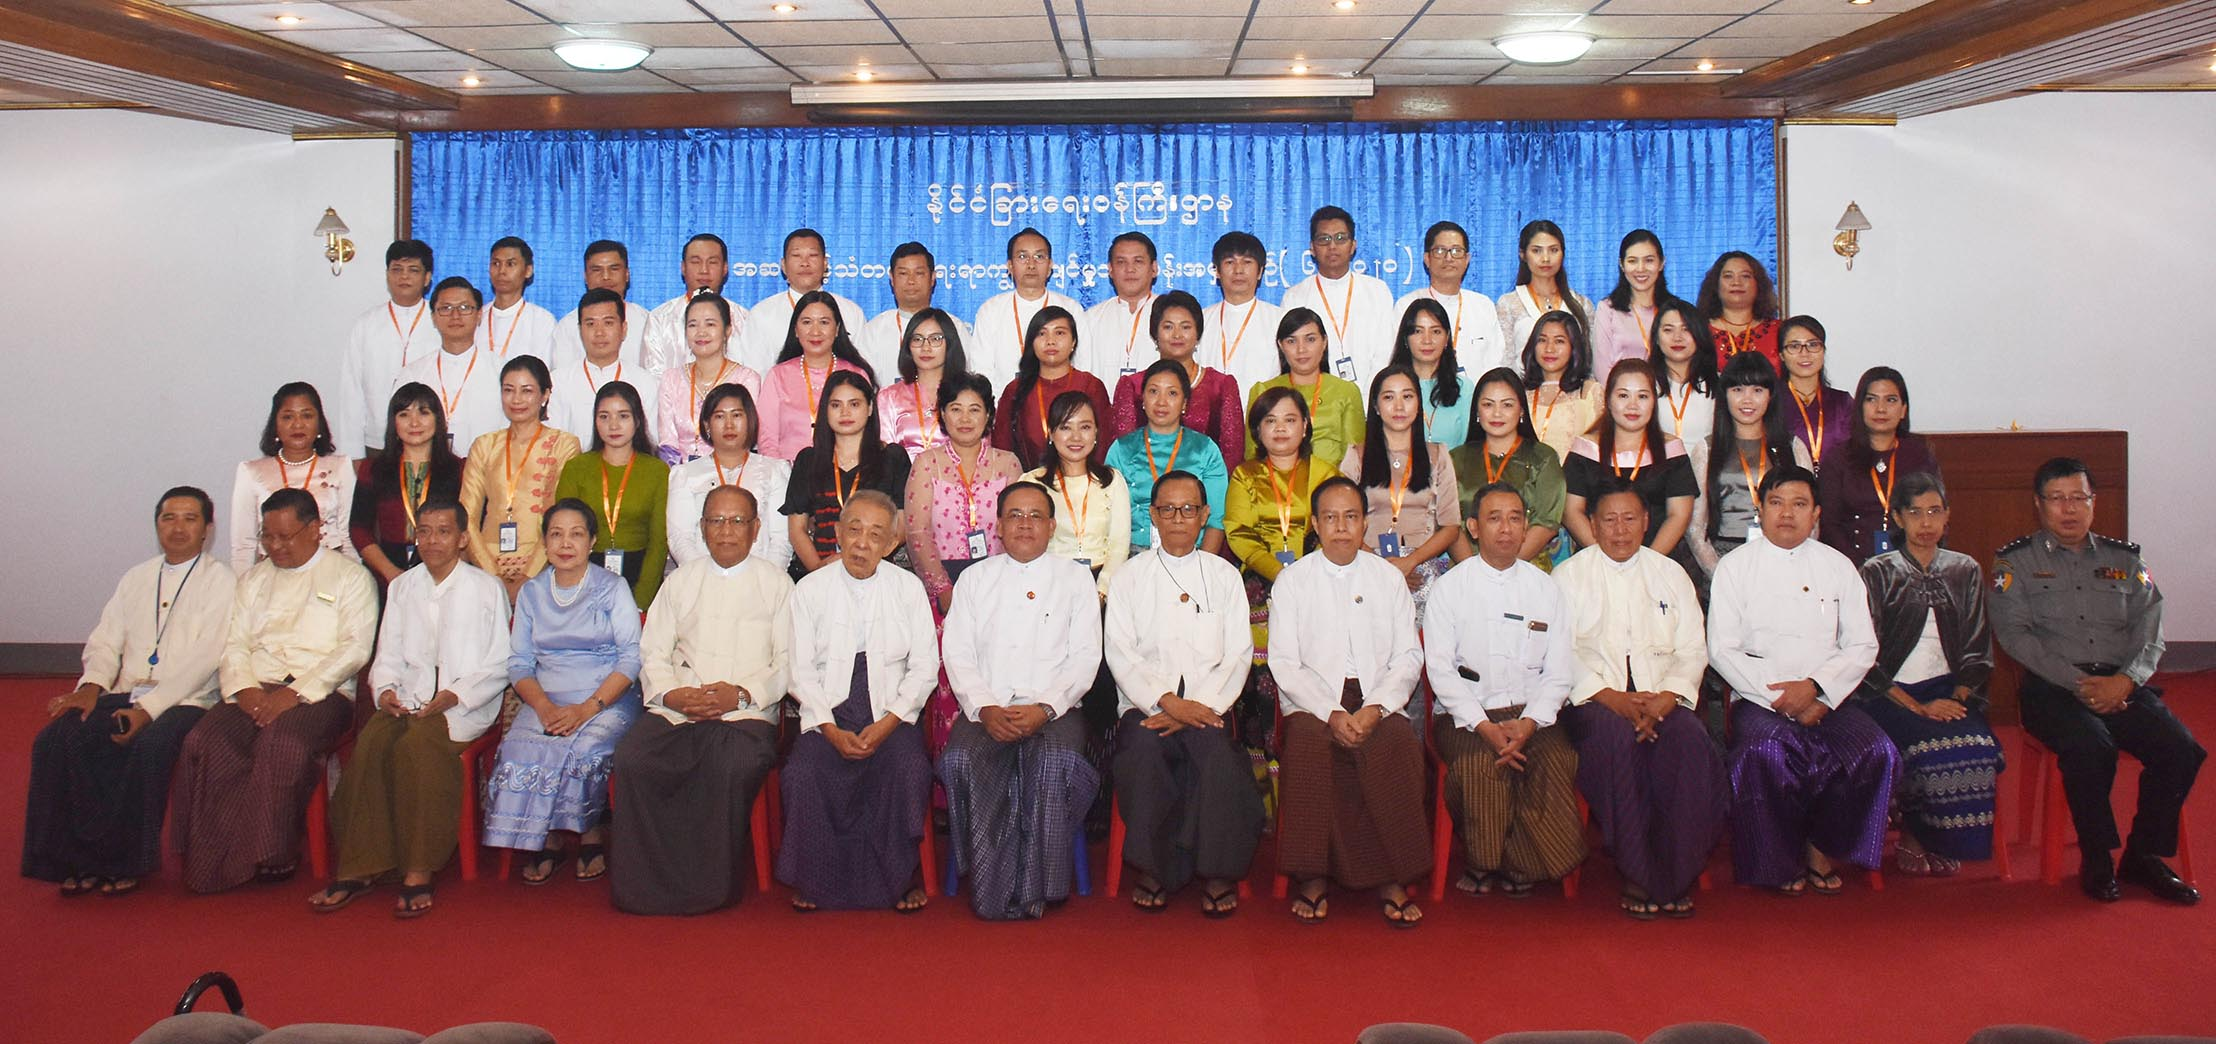 Union Minister U Kyaw Tin and attendees pose for a group photo at the certificate awarding ceremony for Enhanced Diplomatic Skills training course (6/2020).Photo: MNA